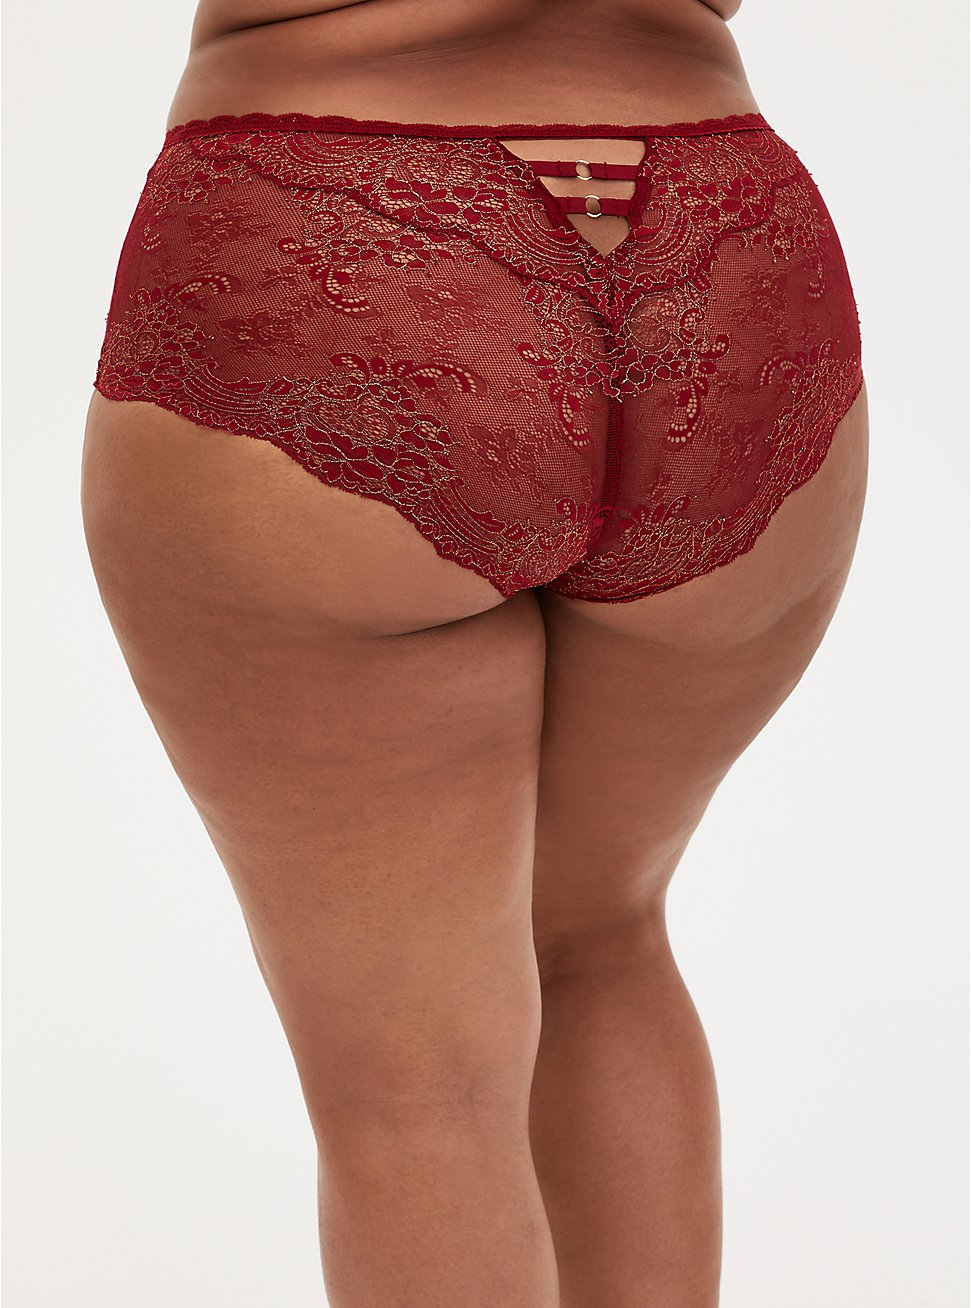 Dark Red Lace Lattice Cheeky Panty , BIKING RED, hi-res